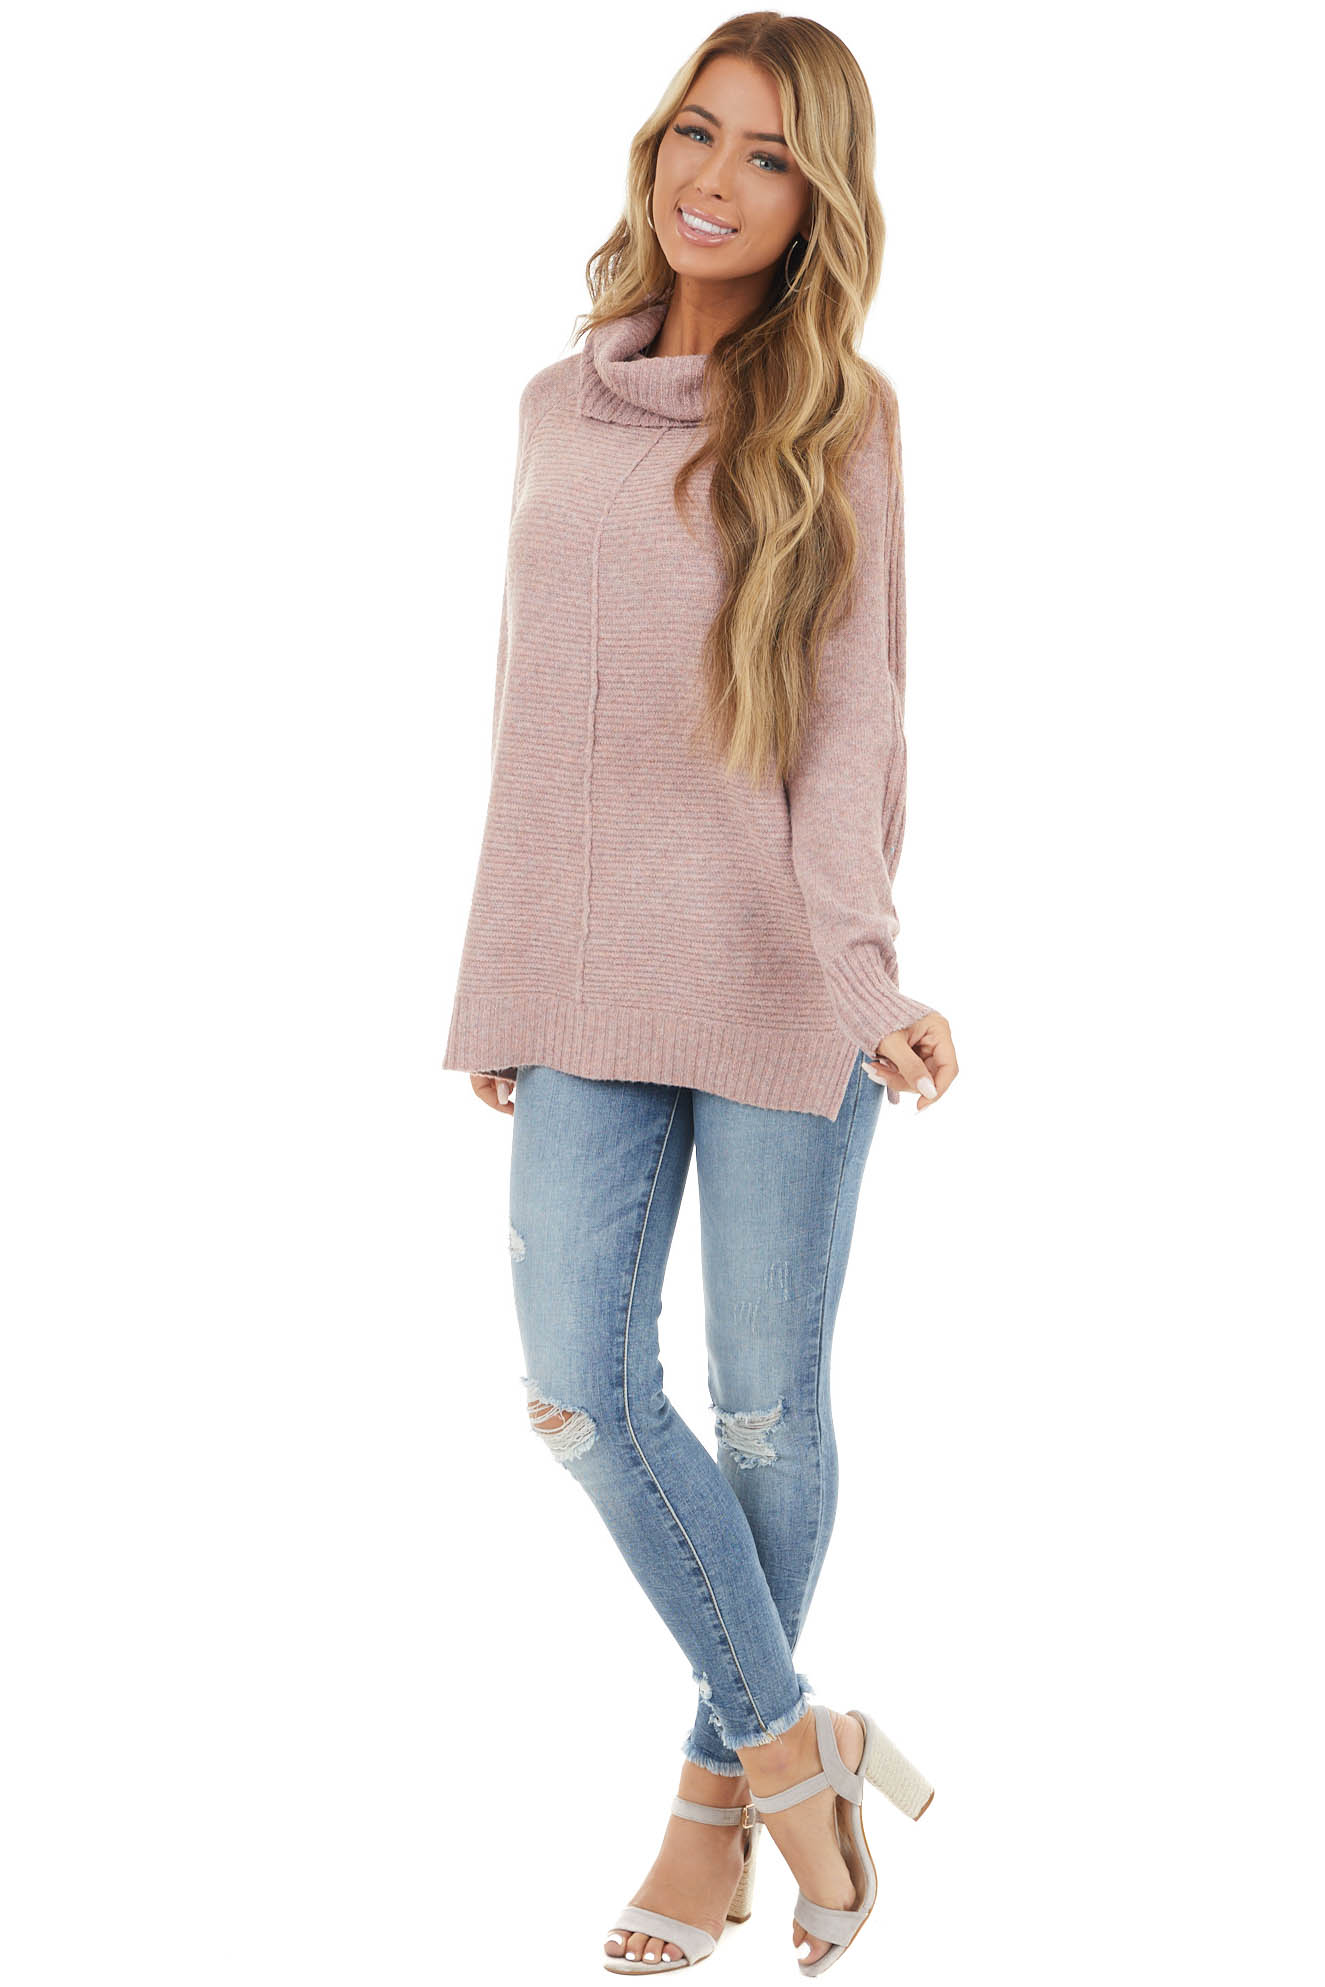 Dusty Blush Cowl Neck Knit Sweater with Texture Detail